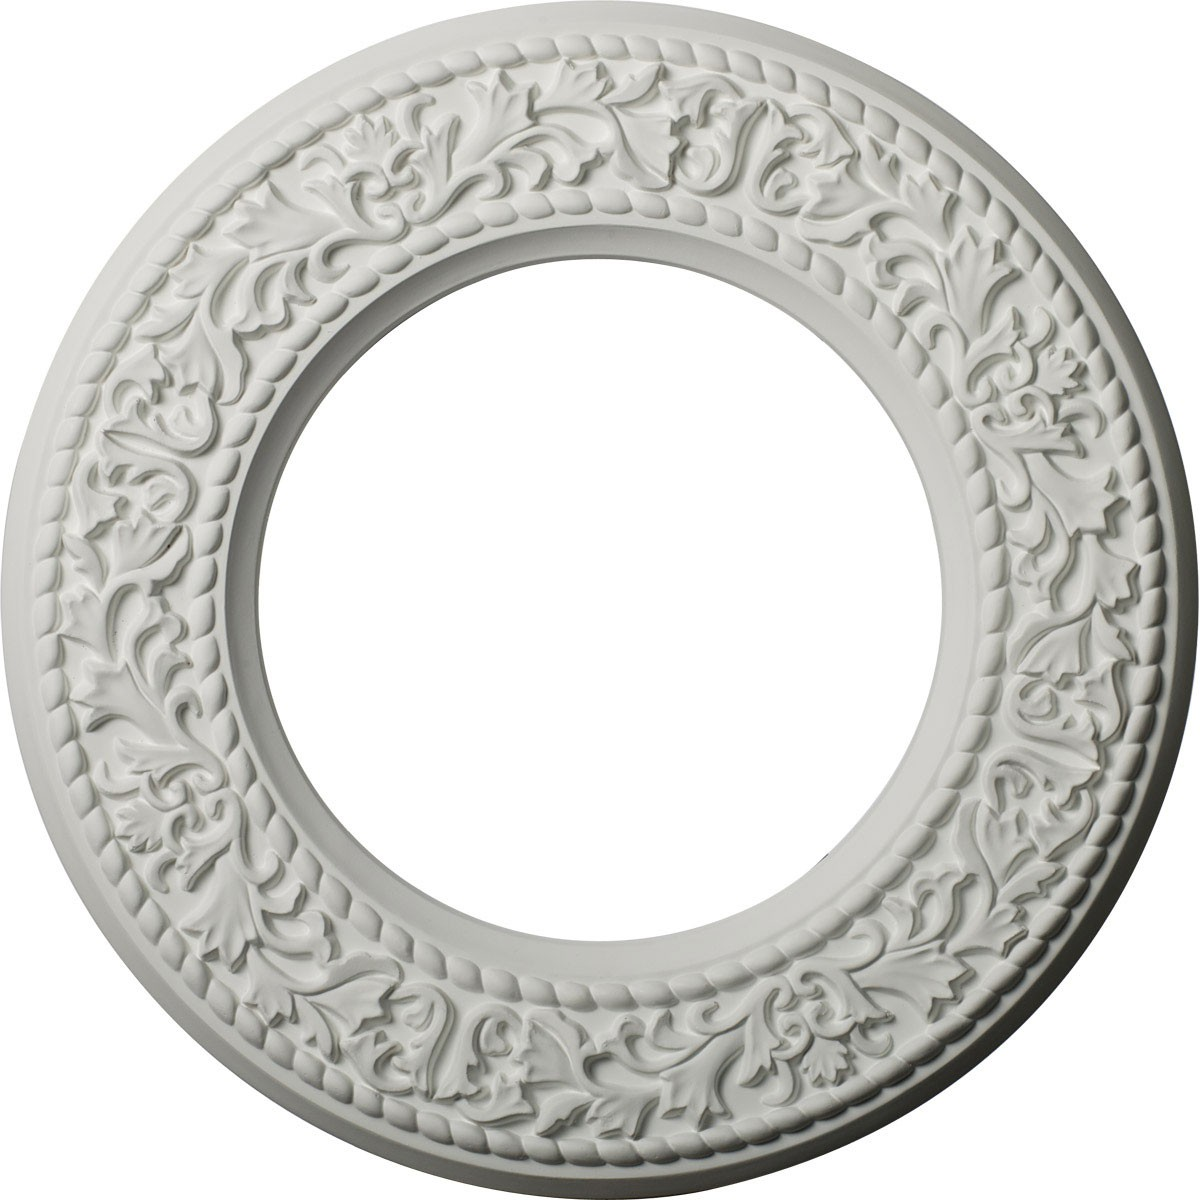 """EM-CM13BL - 13 3/8""""OD x 7 1/2""""ID x 3/4""""P Blackthorn Ceiling Medallion (Fits Canopies up to 7 1/2"""")"""